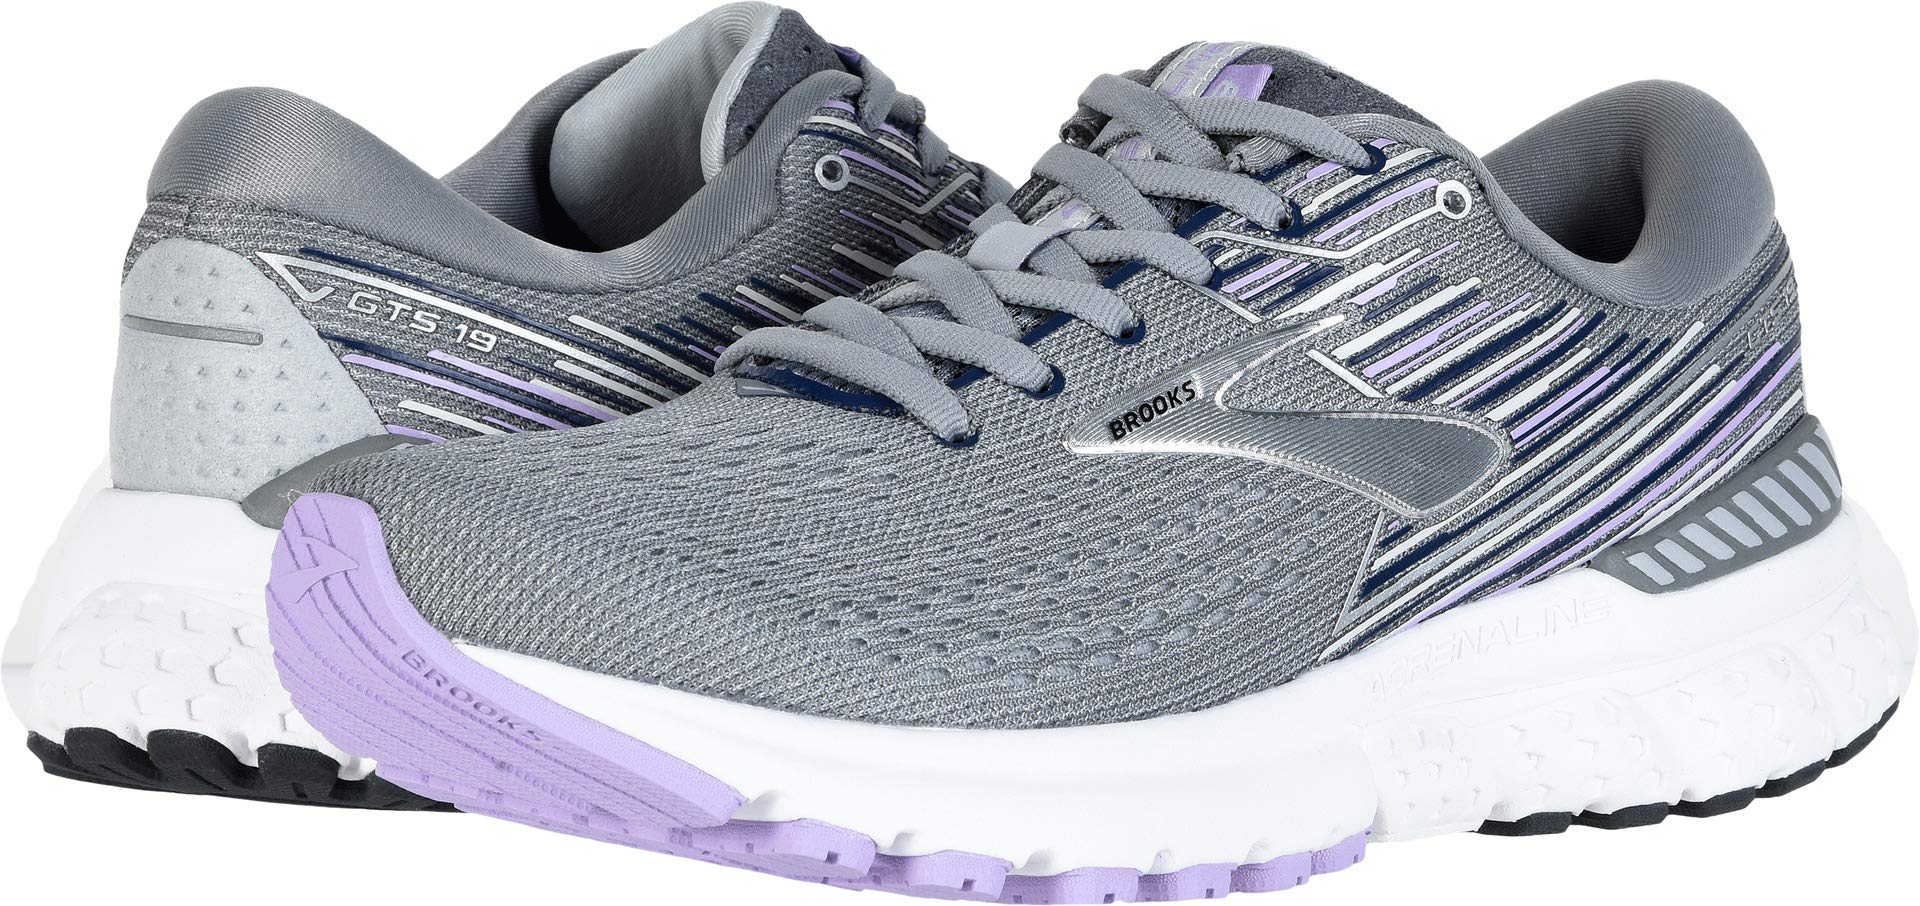 Brooks Women's Adrenaline GTS 19 Grey/Lavender/Navy 11.5 B US by Brooks